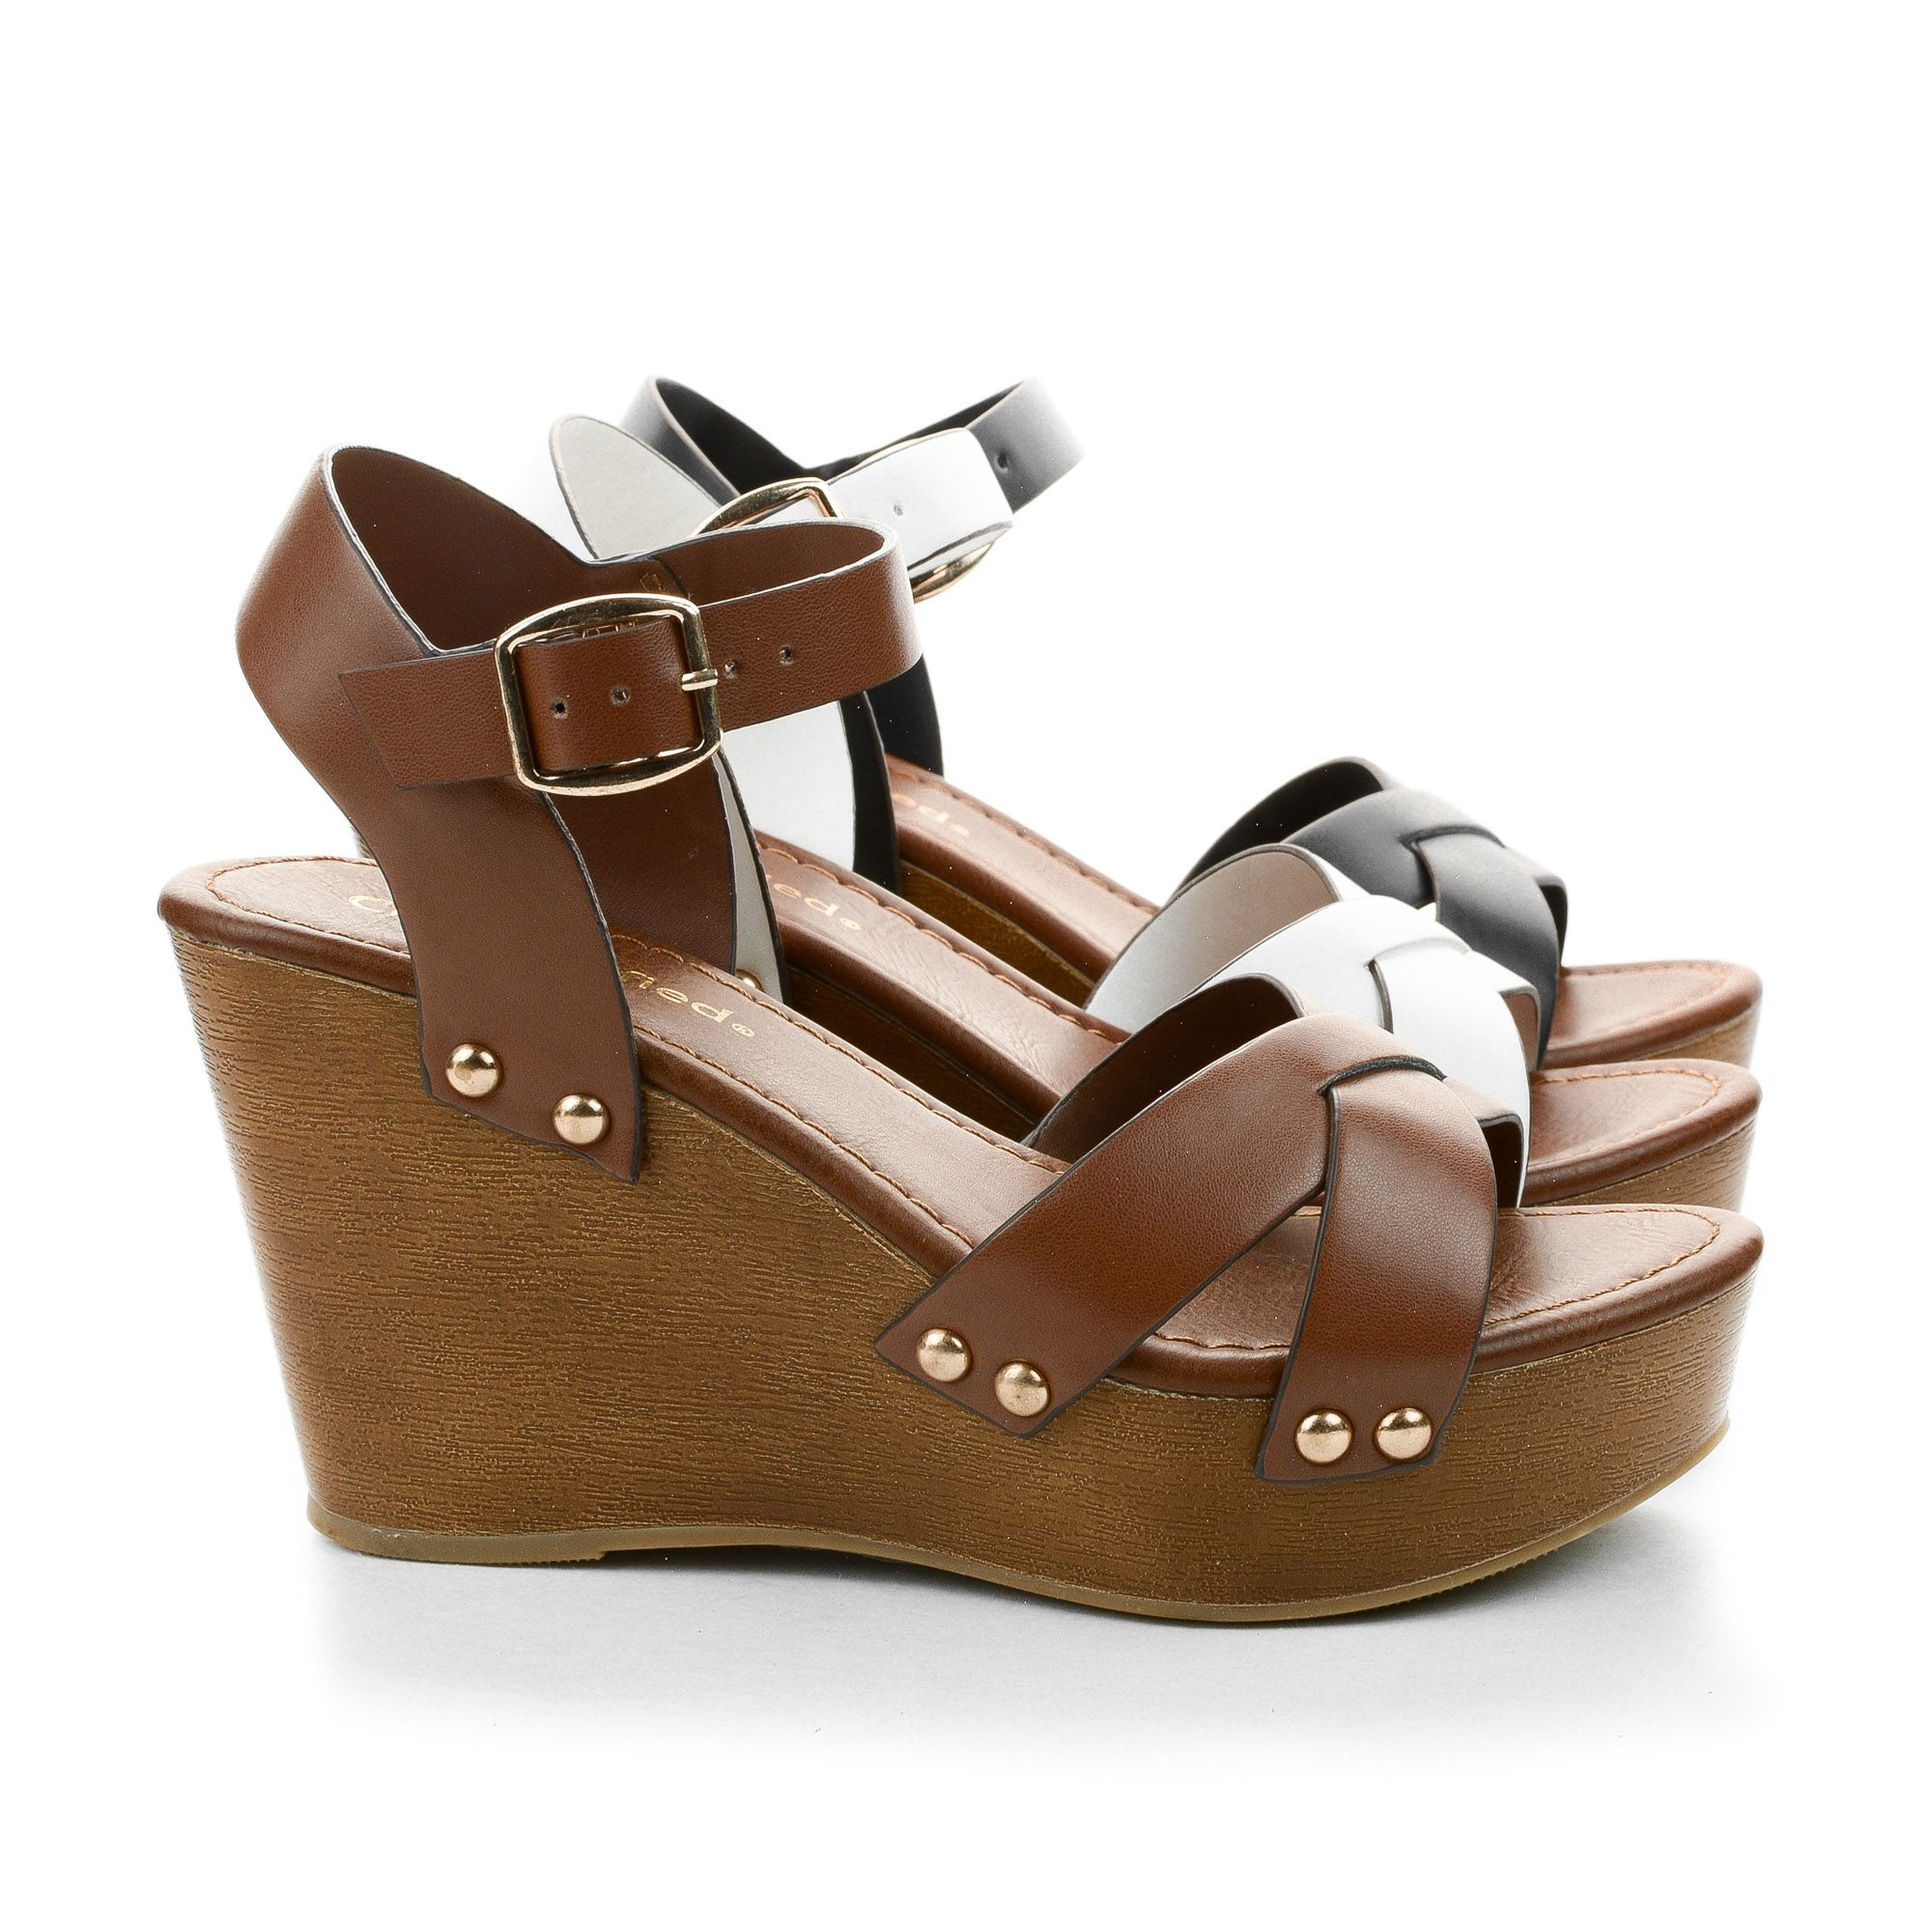 e40a771320 Klaris Open Toe Criss Cross Strappy Faux Wooden Platform High Wedge Heels. # women #shoes for $24.50, enter AquaPin during checkout to receive 15% off.